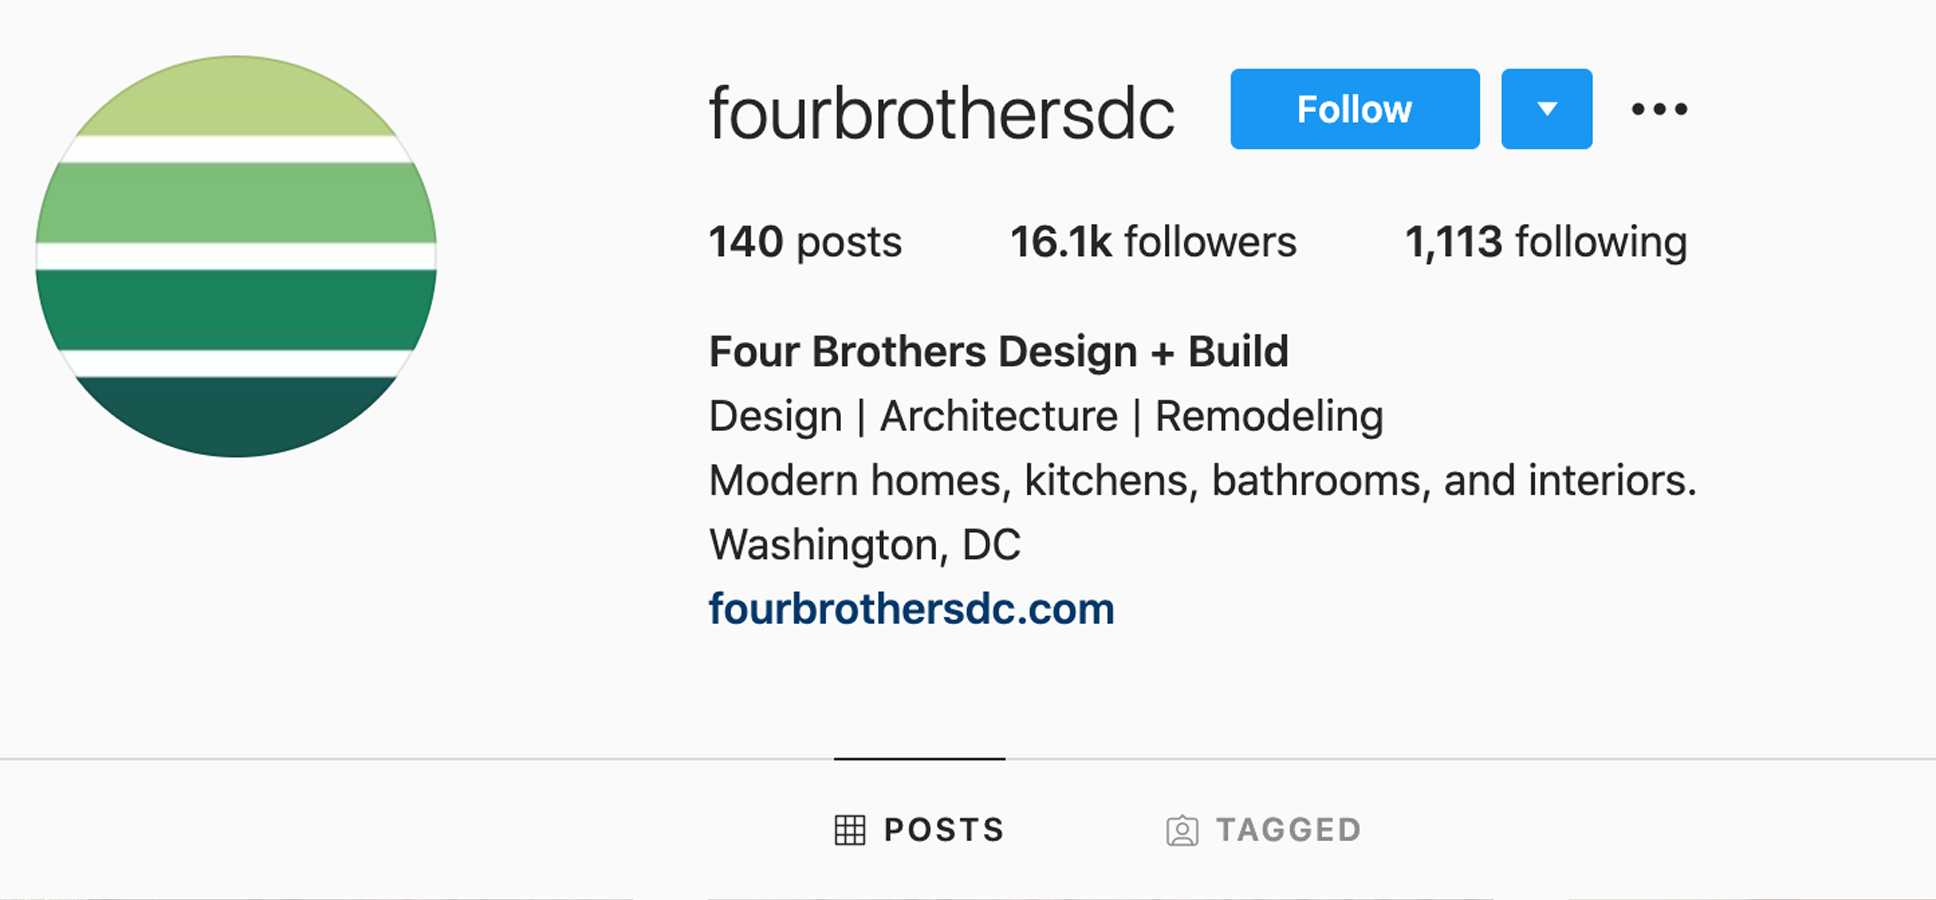 four-brothers-design-&-build-fourbrothersdc-instagram-profile